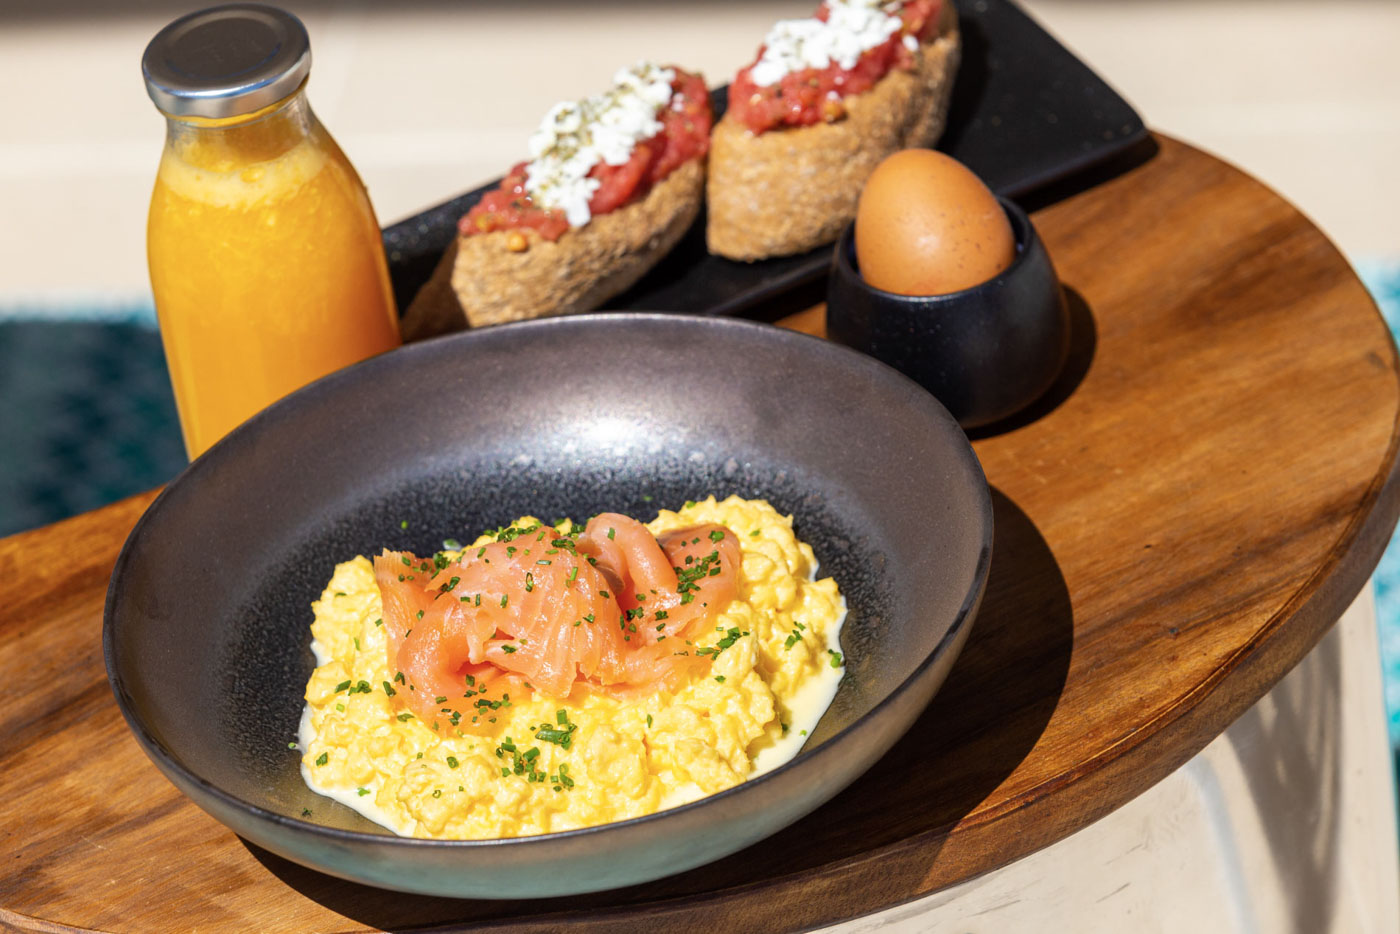 Elysian luxury hotel and spa Kalamata breakfast with eggs